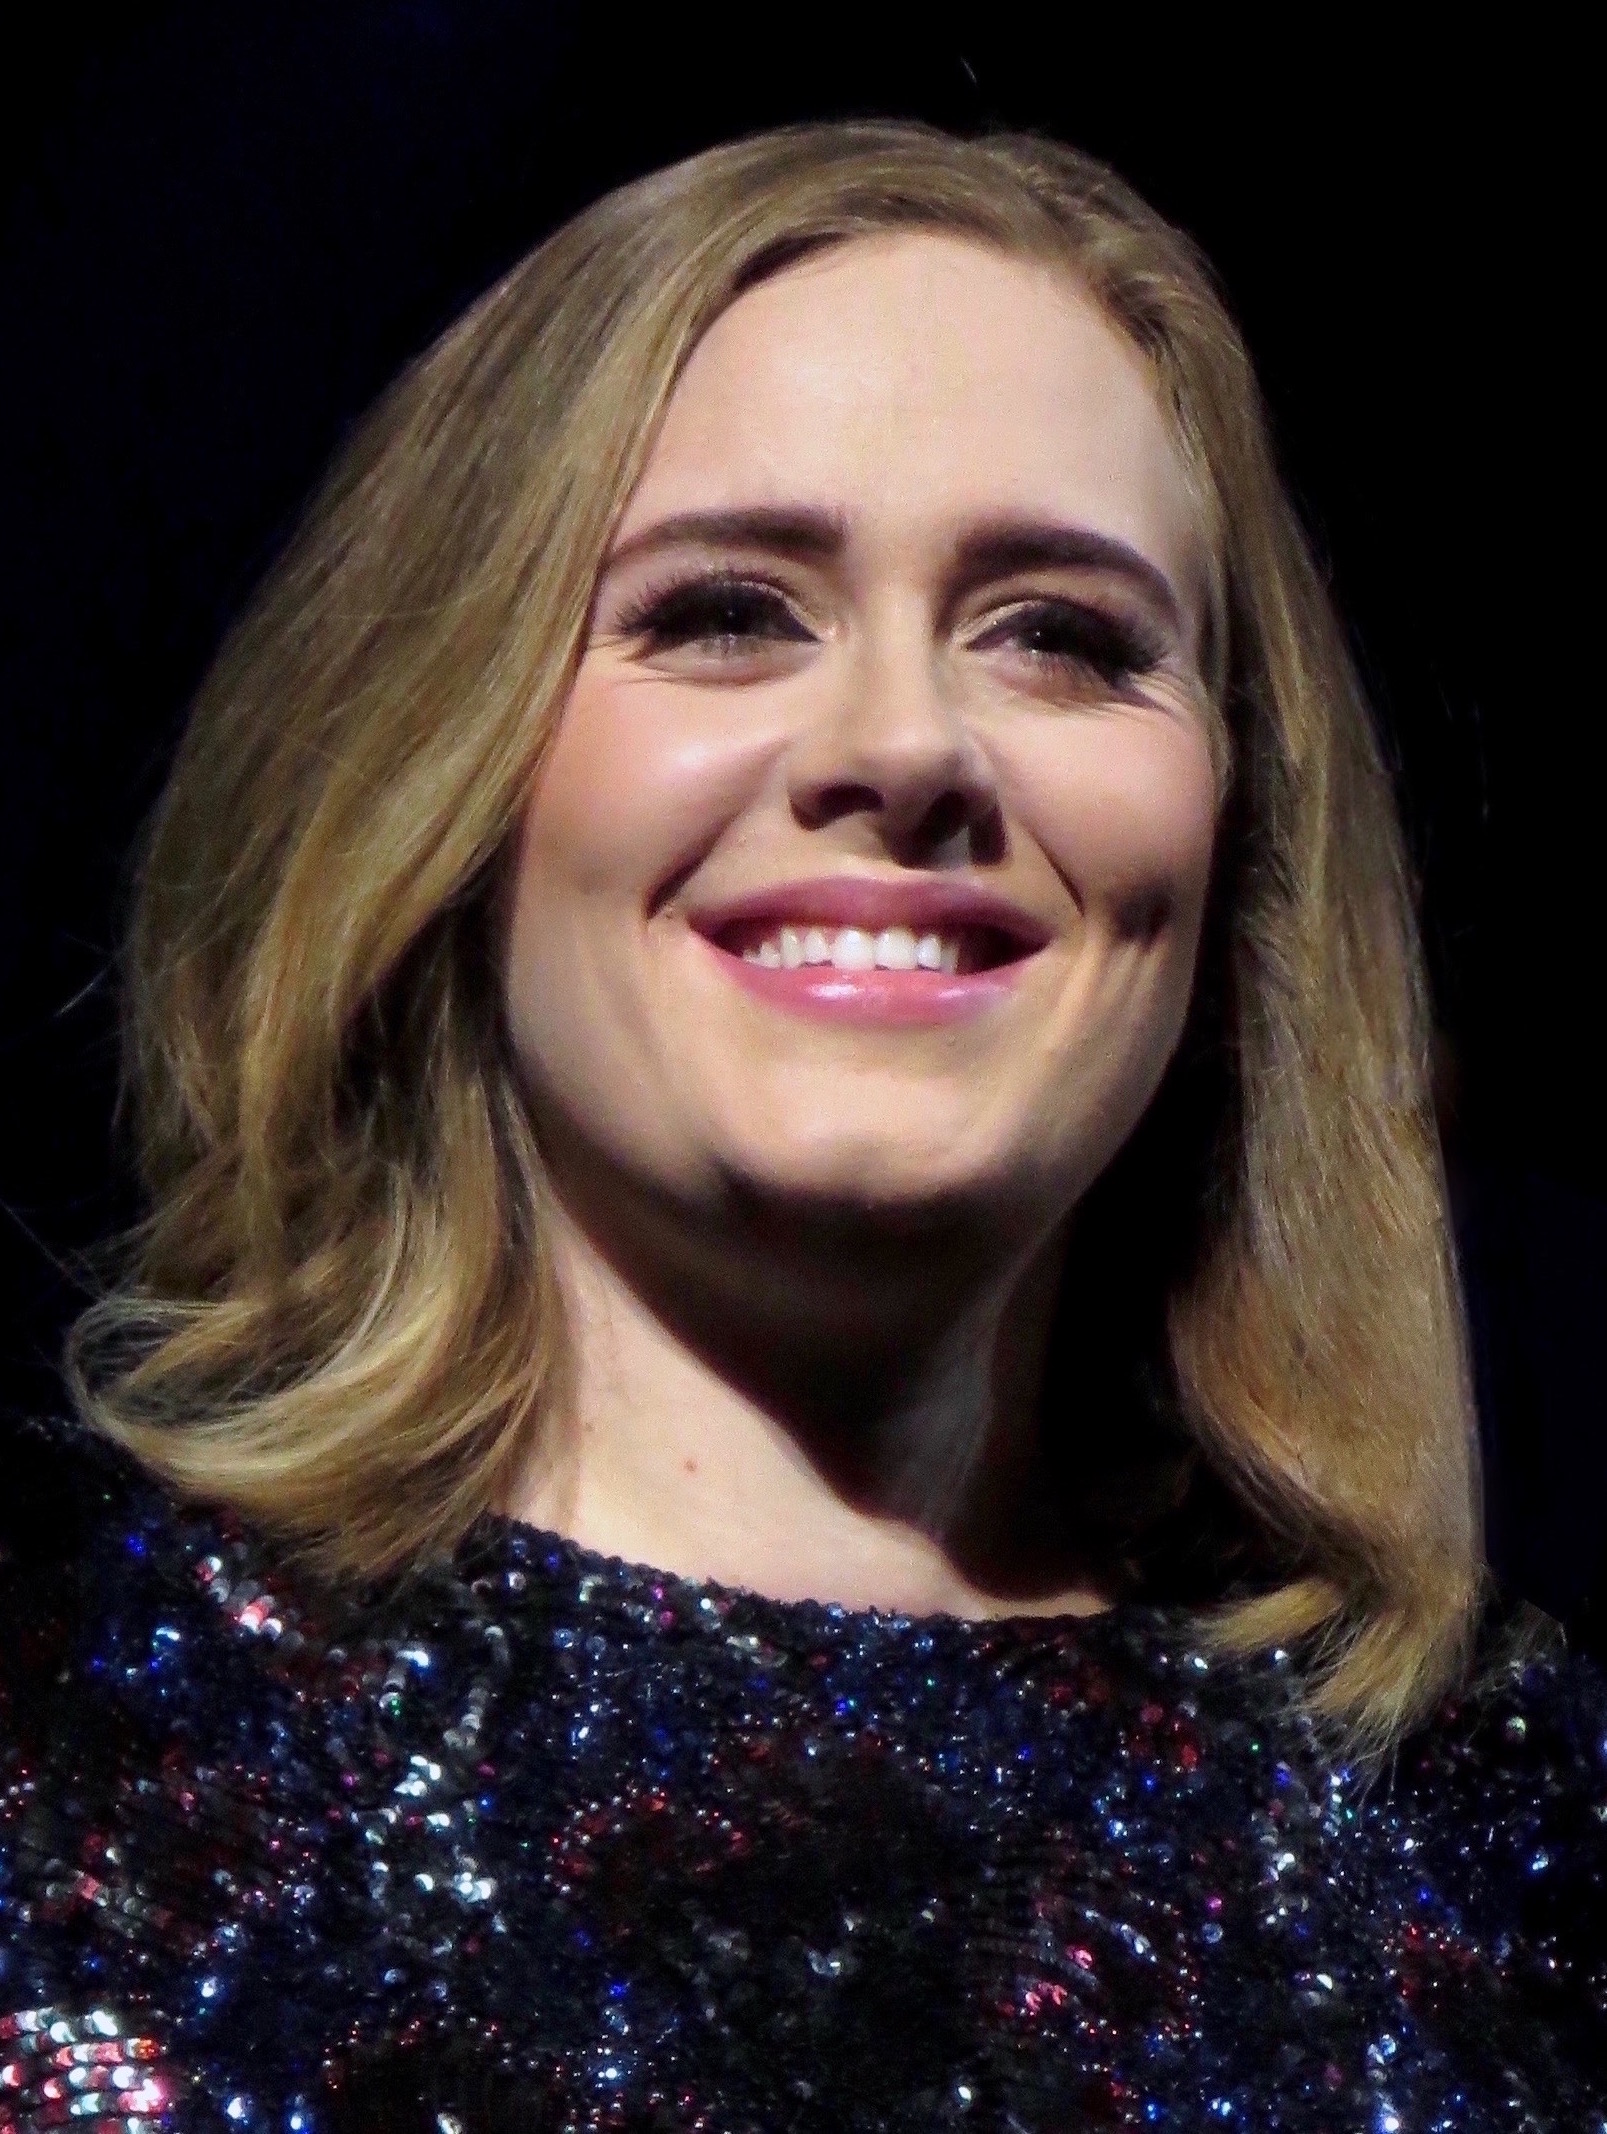 The 29-year old daughter of father Mark Evans and mother Penny Adkins, 175 cm tall Adele in 2018 photo